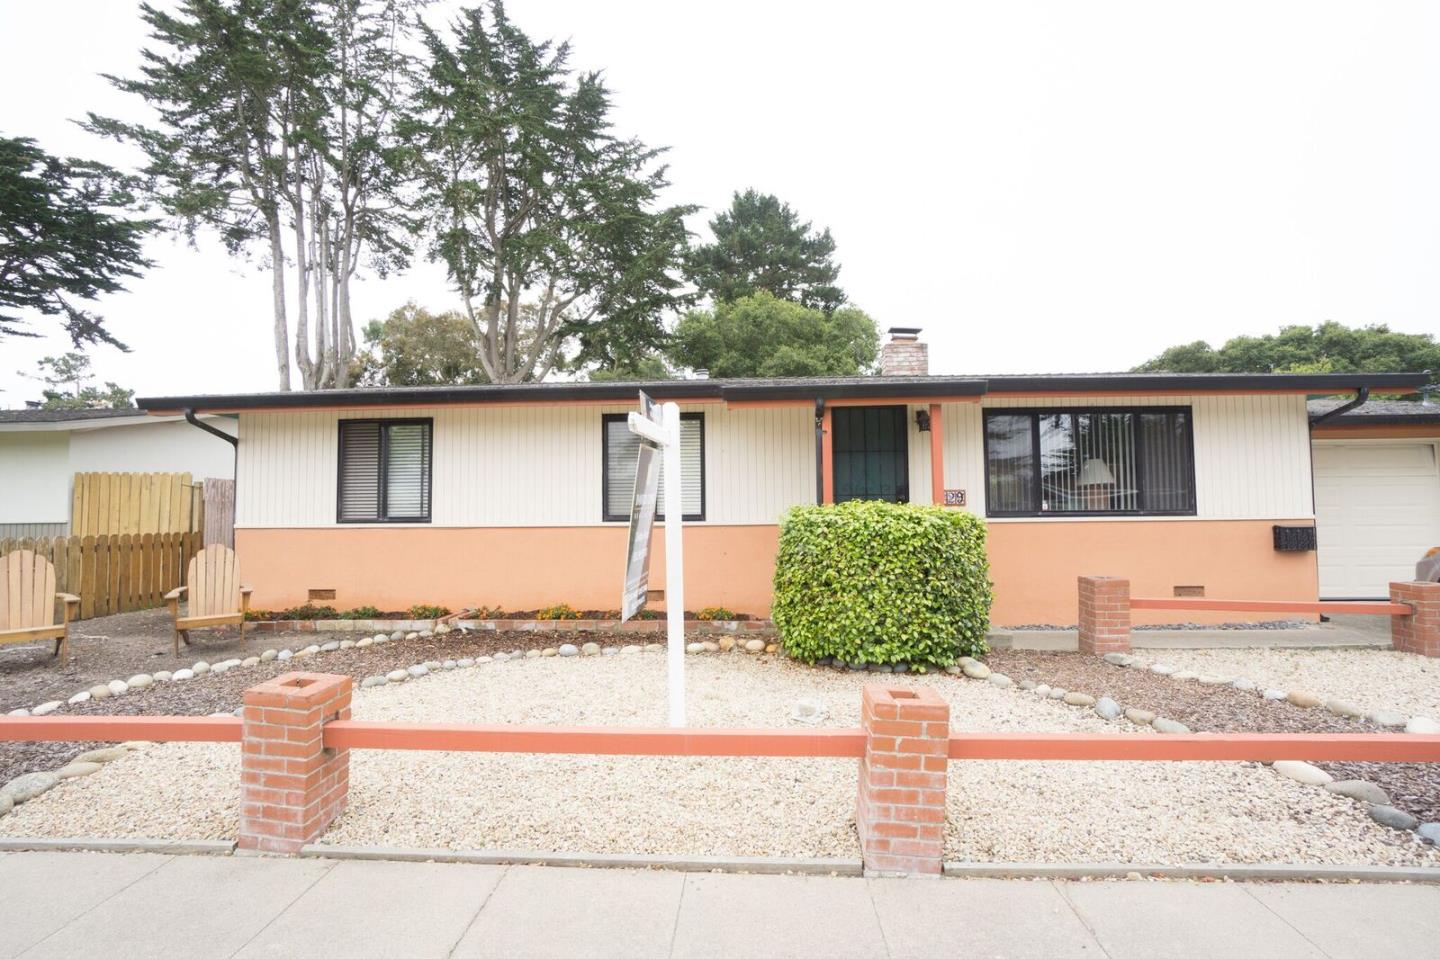 Additional photo for property listing at 729 Rosemont Avenue  Pacific Grove, California 93950 Estados Unidos